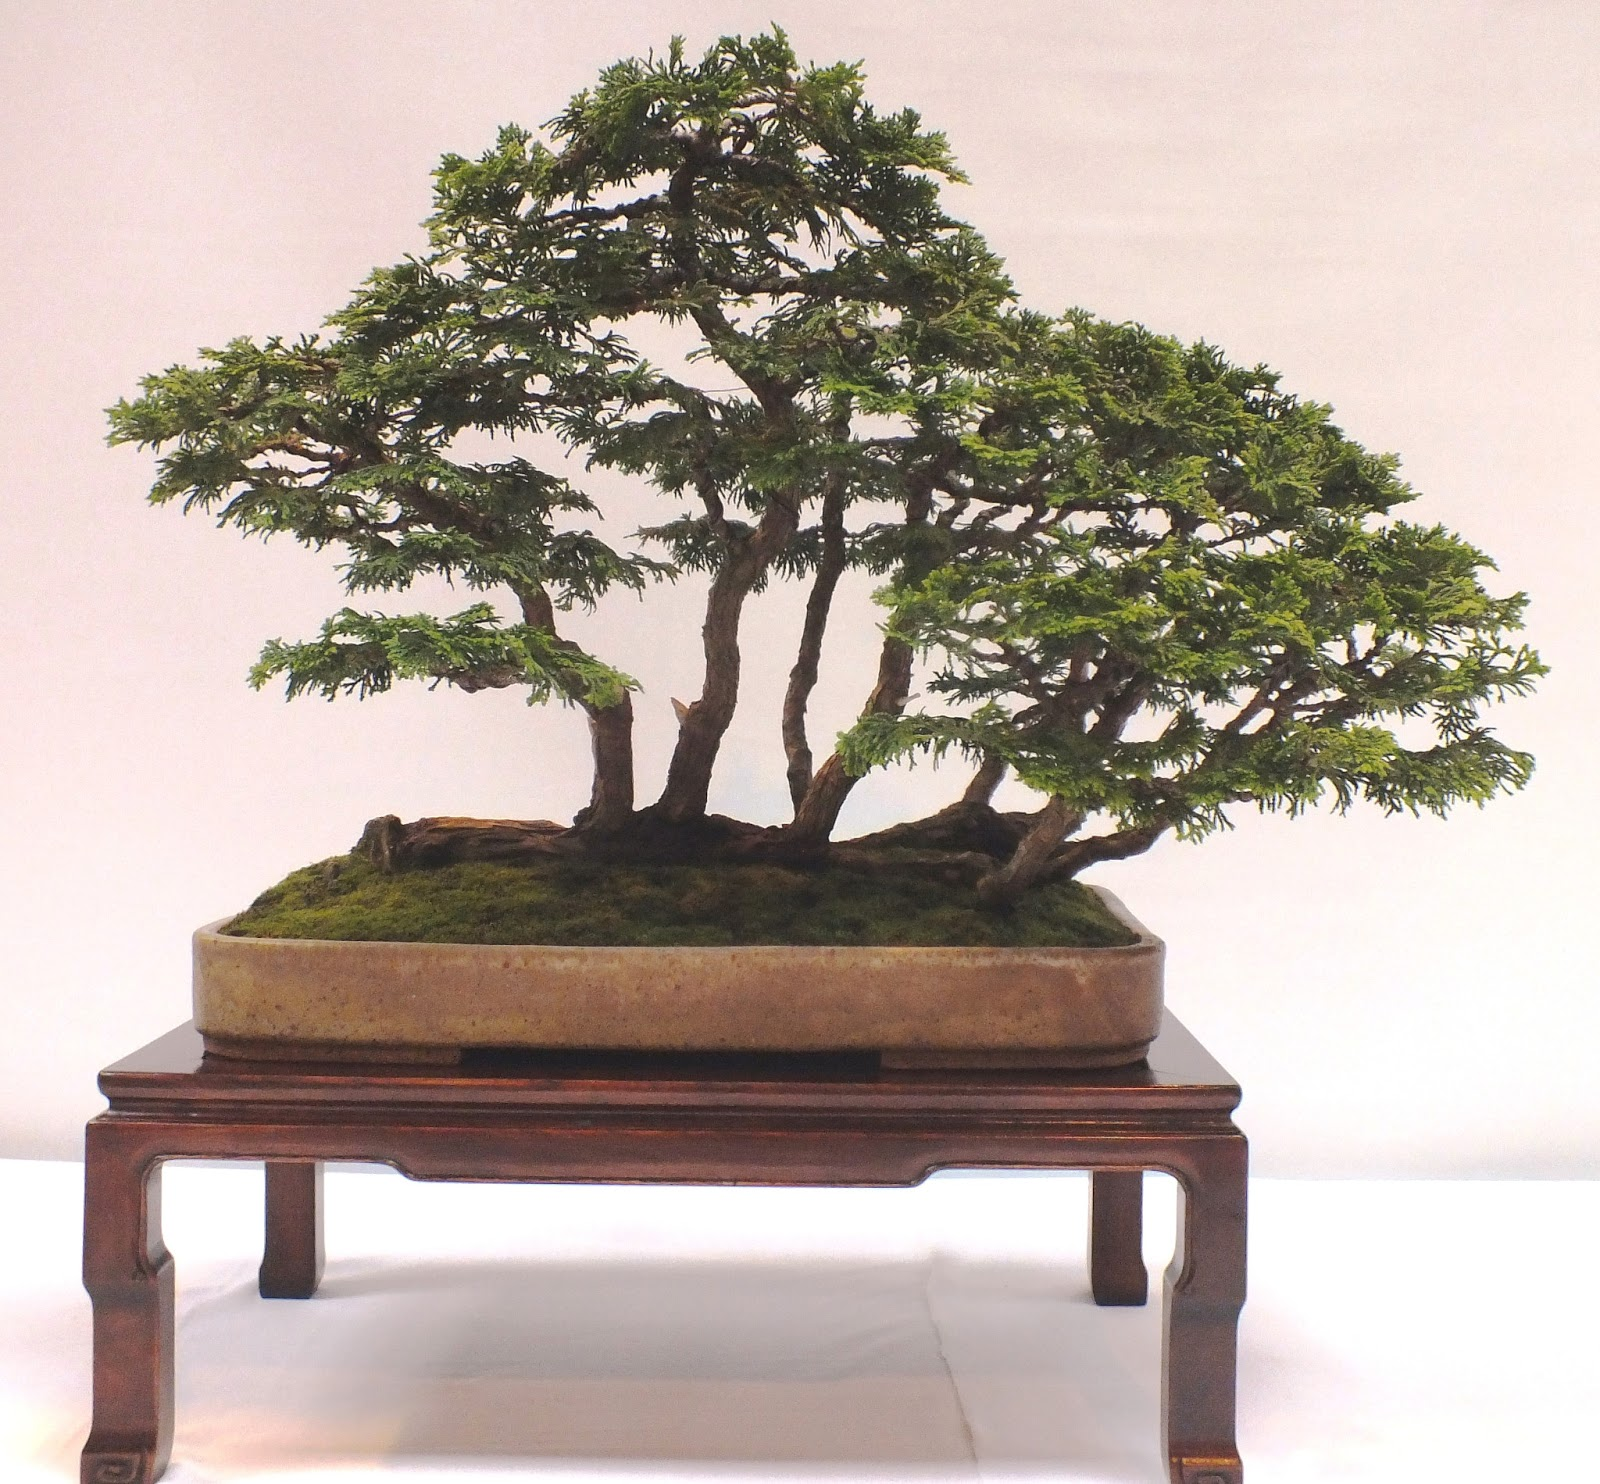 Steve Tolley39s Bonsai And Suiseki Blog BOBB 2013